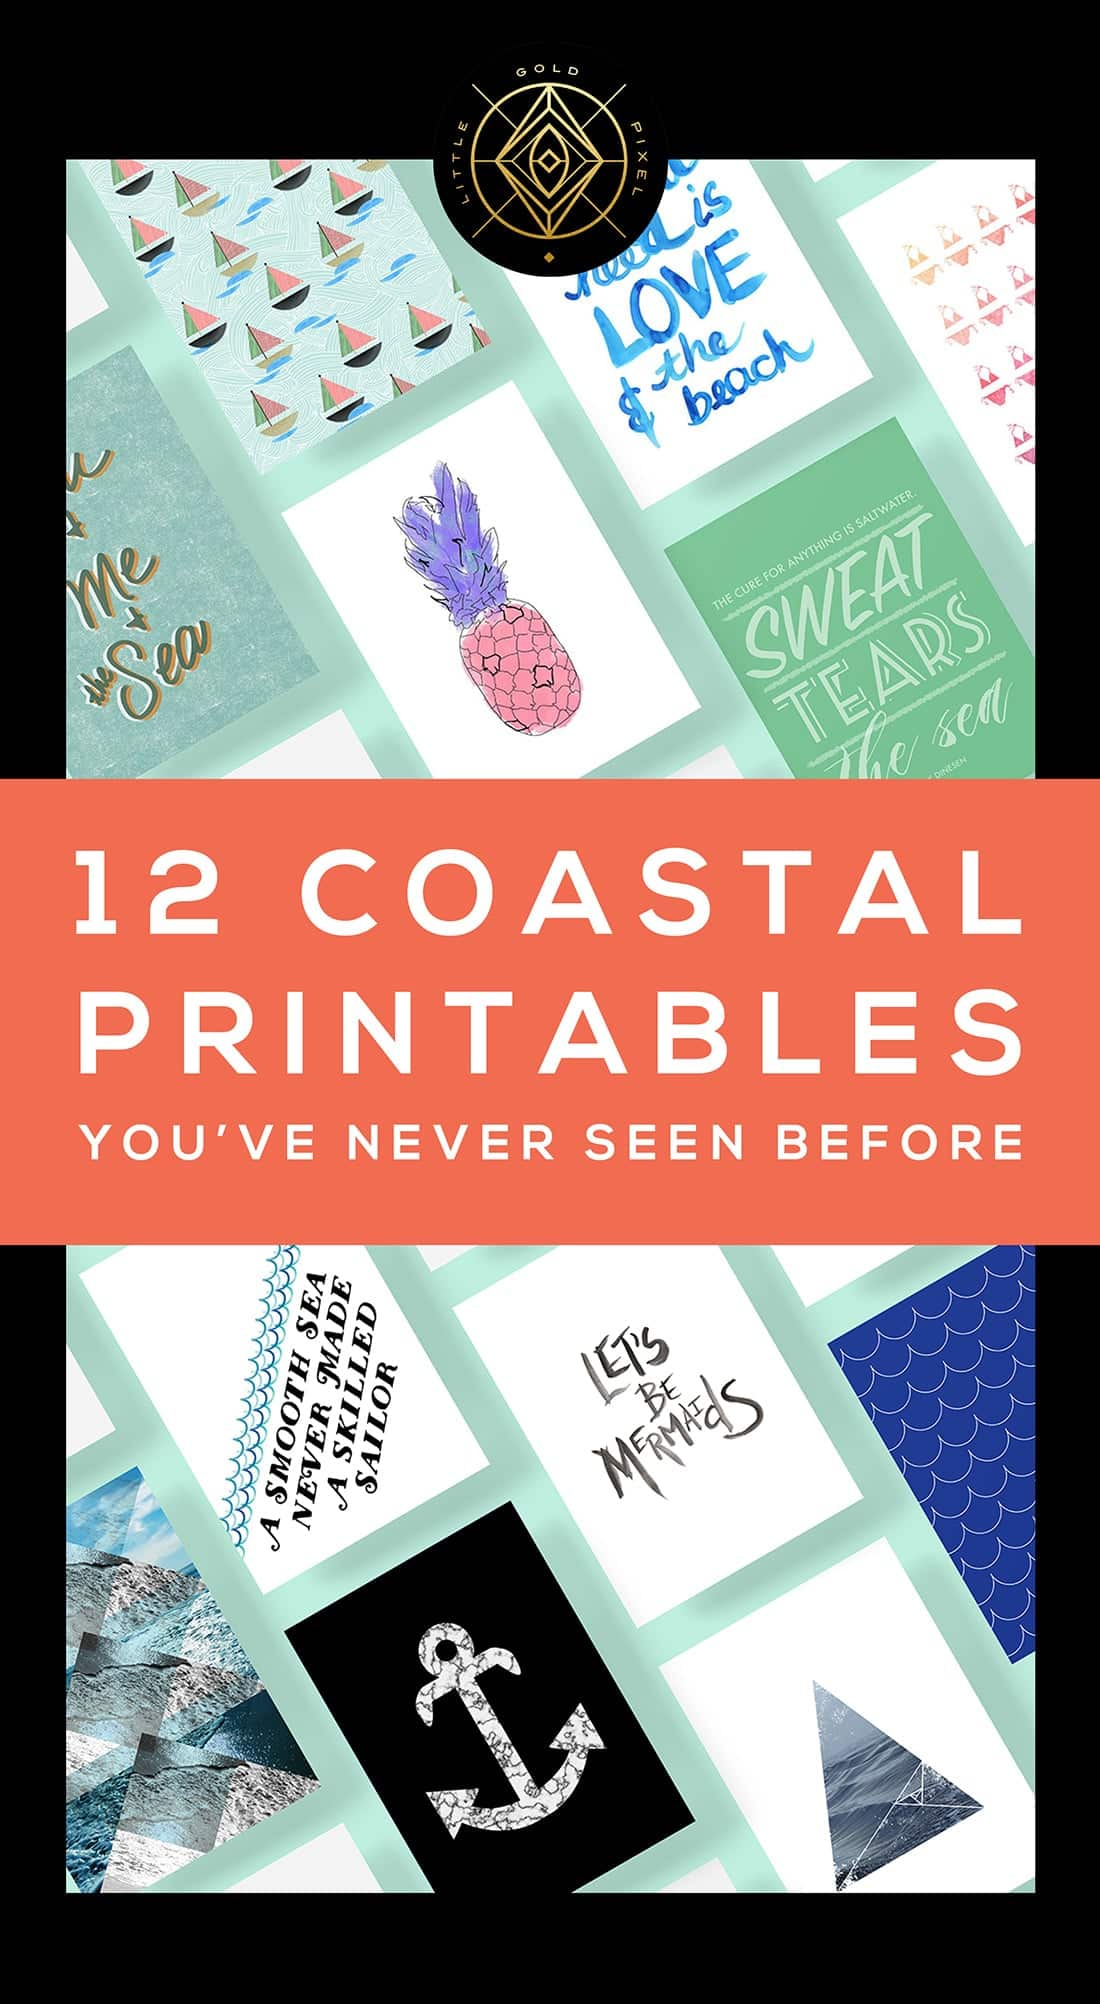 12 Coastal Printables You've Never Seen Before • Little Gold Pixel